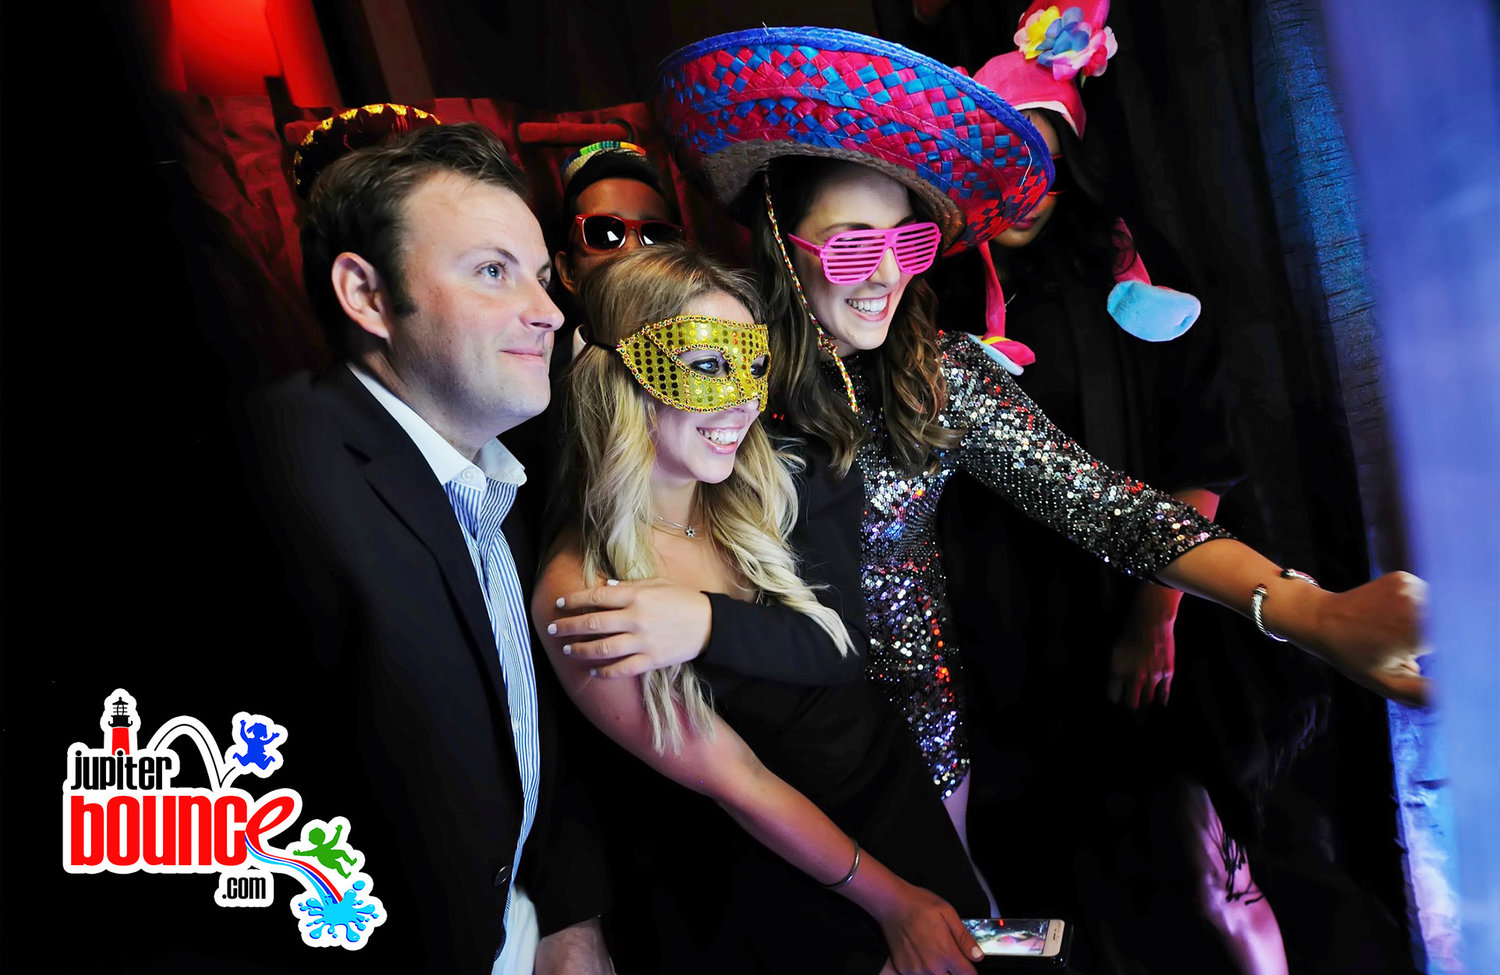 photobooth-jupiterbounce-palmbeachpartyrental-tequesta-events-weddingdj-karaoke.jpg